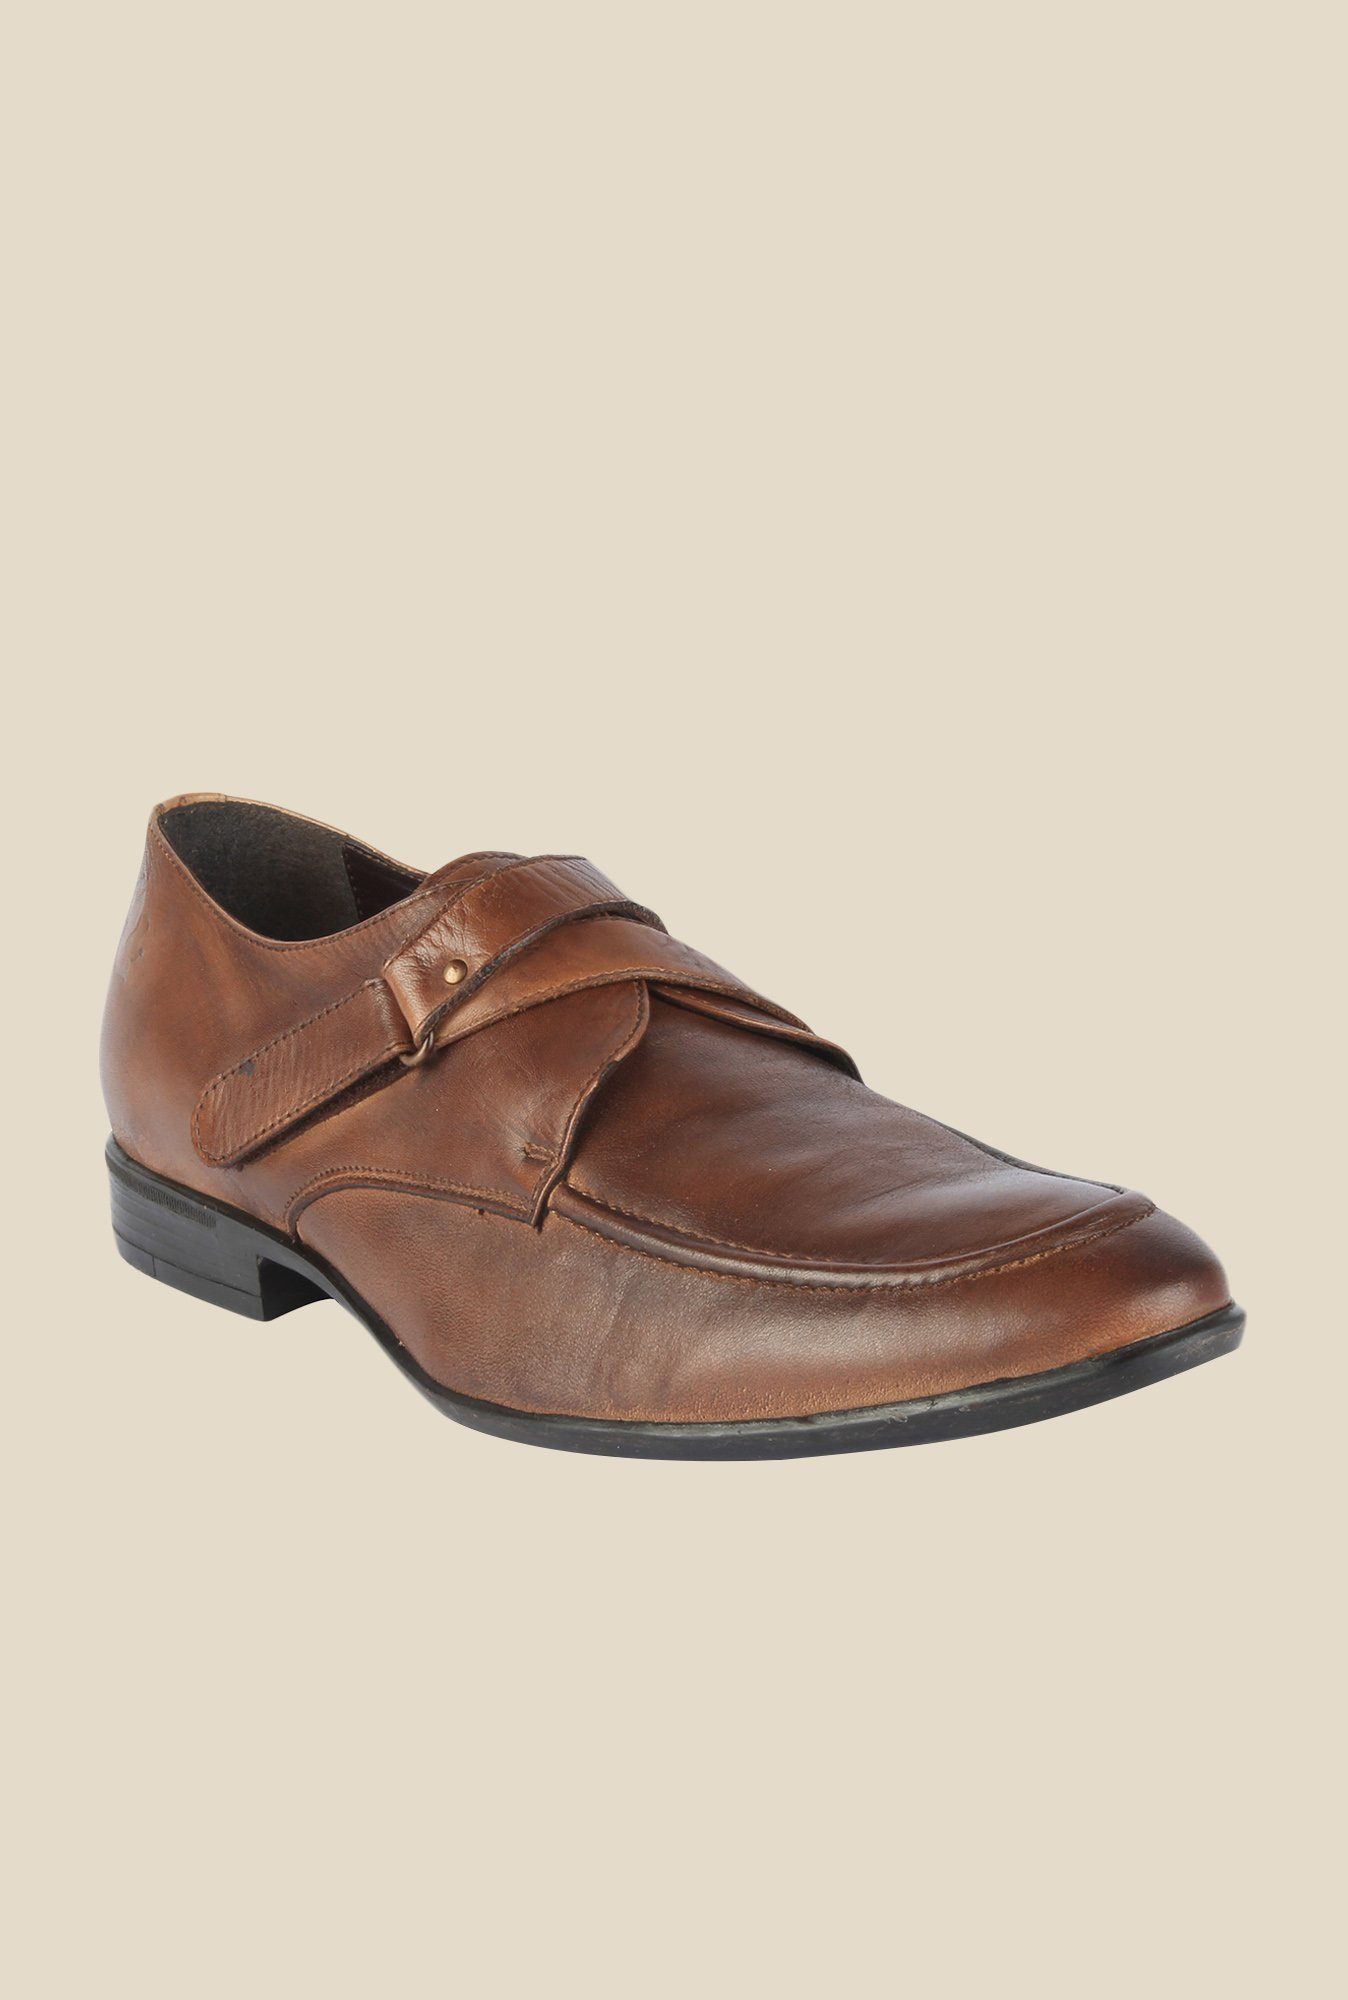 Salt 'n' Pepper Koop Brown Monk Shoes